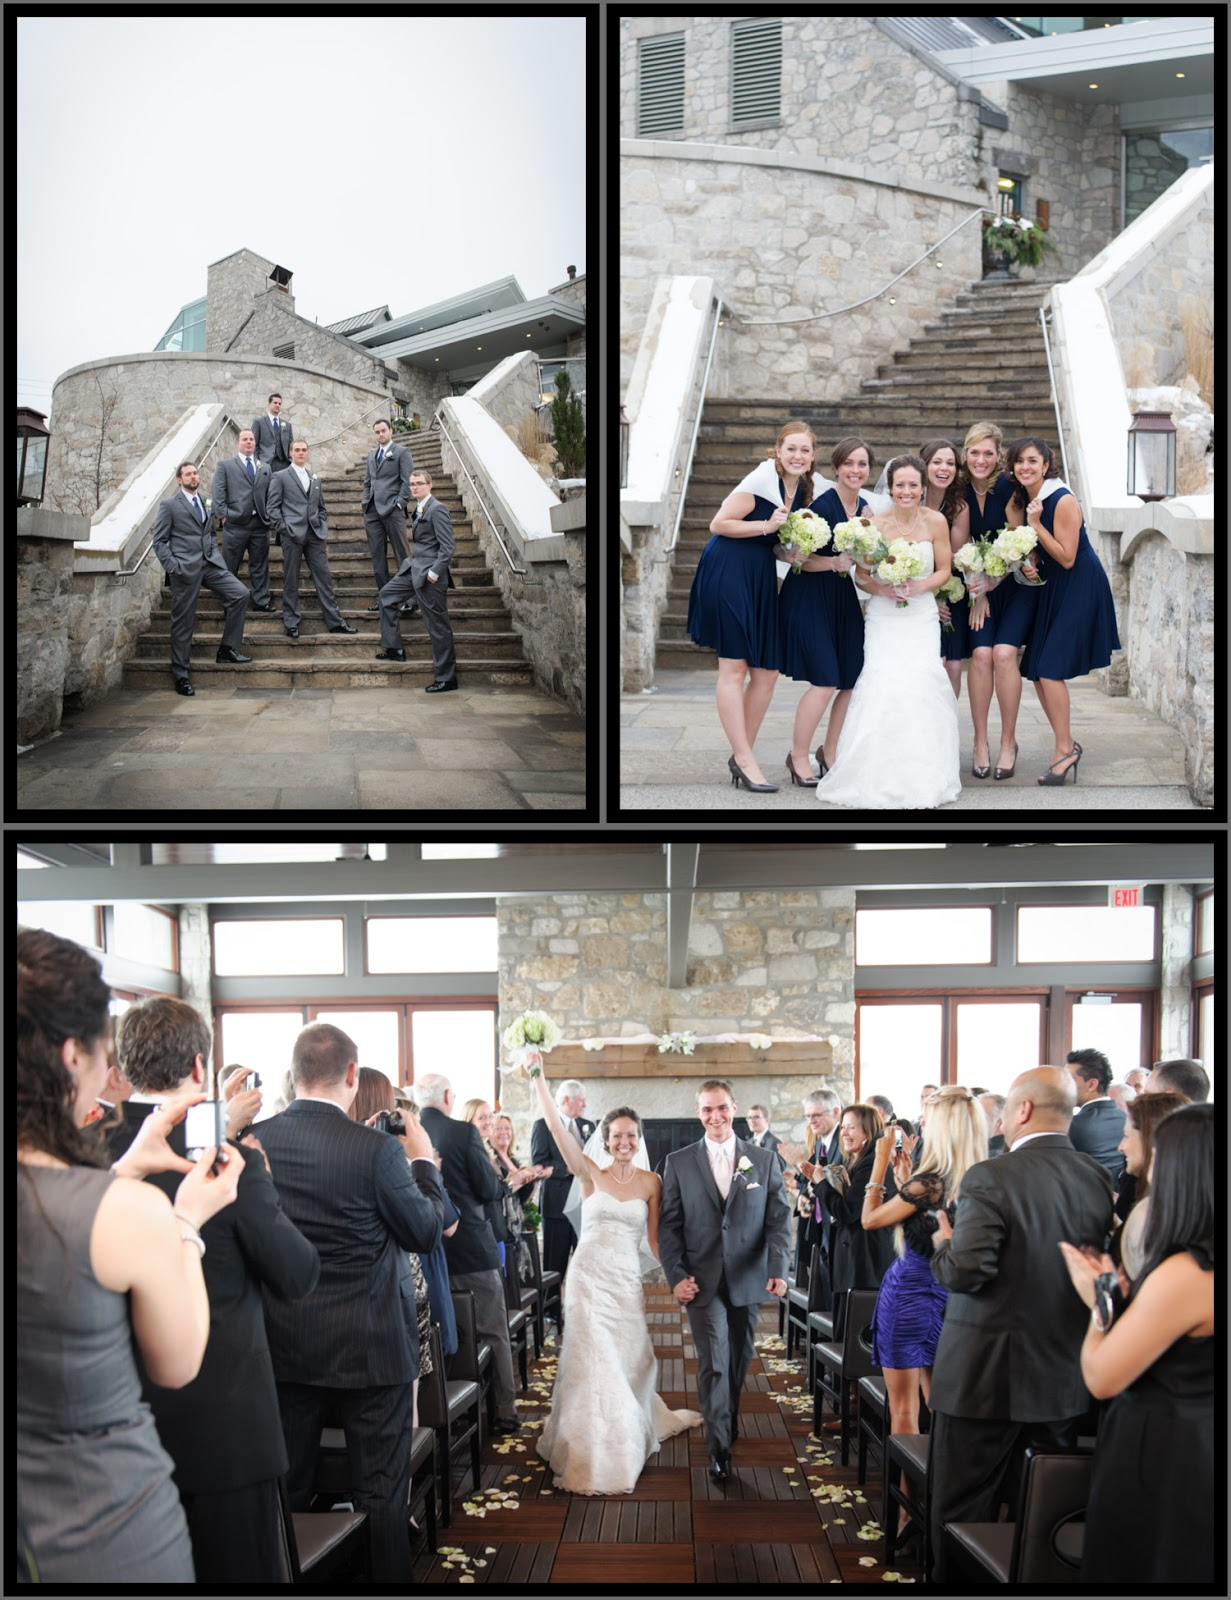 My First Wedding For 2013 Was At The Cambridge Mill On A Chilly Winters Day Kudos To Laurie And Rory Being Such Great Sports Willing